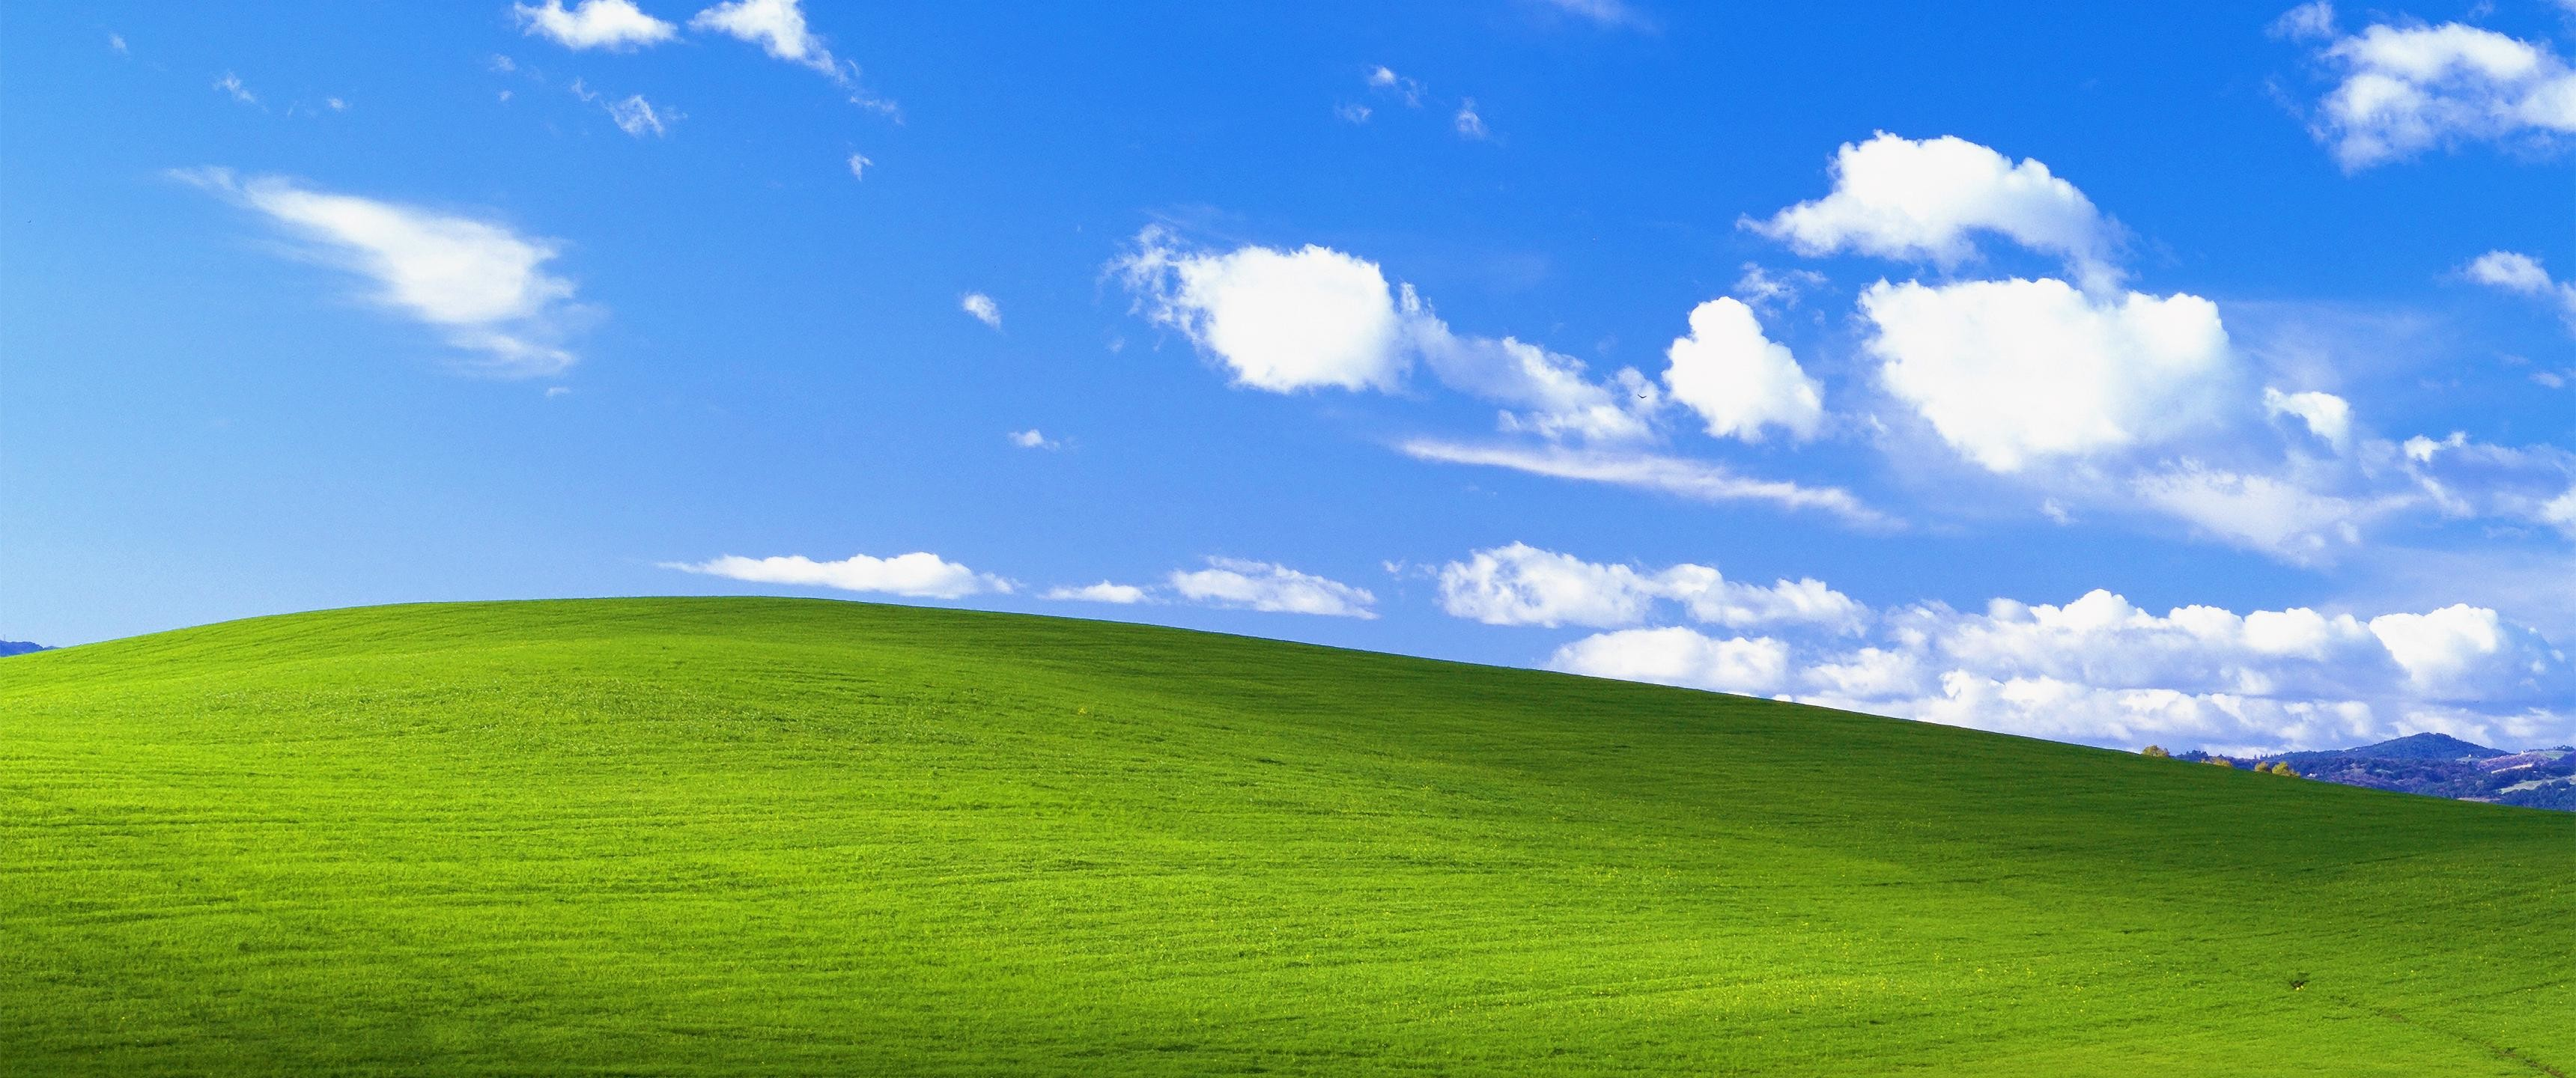 Windows XP Home Edition Wallpaper (48+ images)